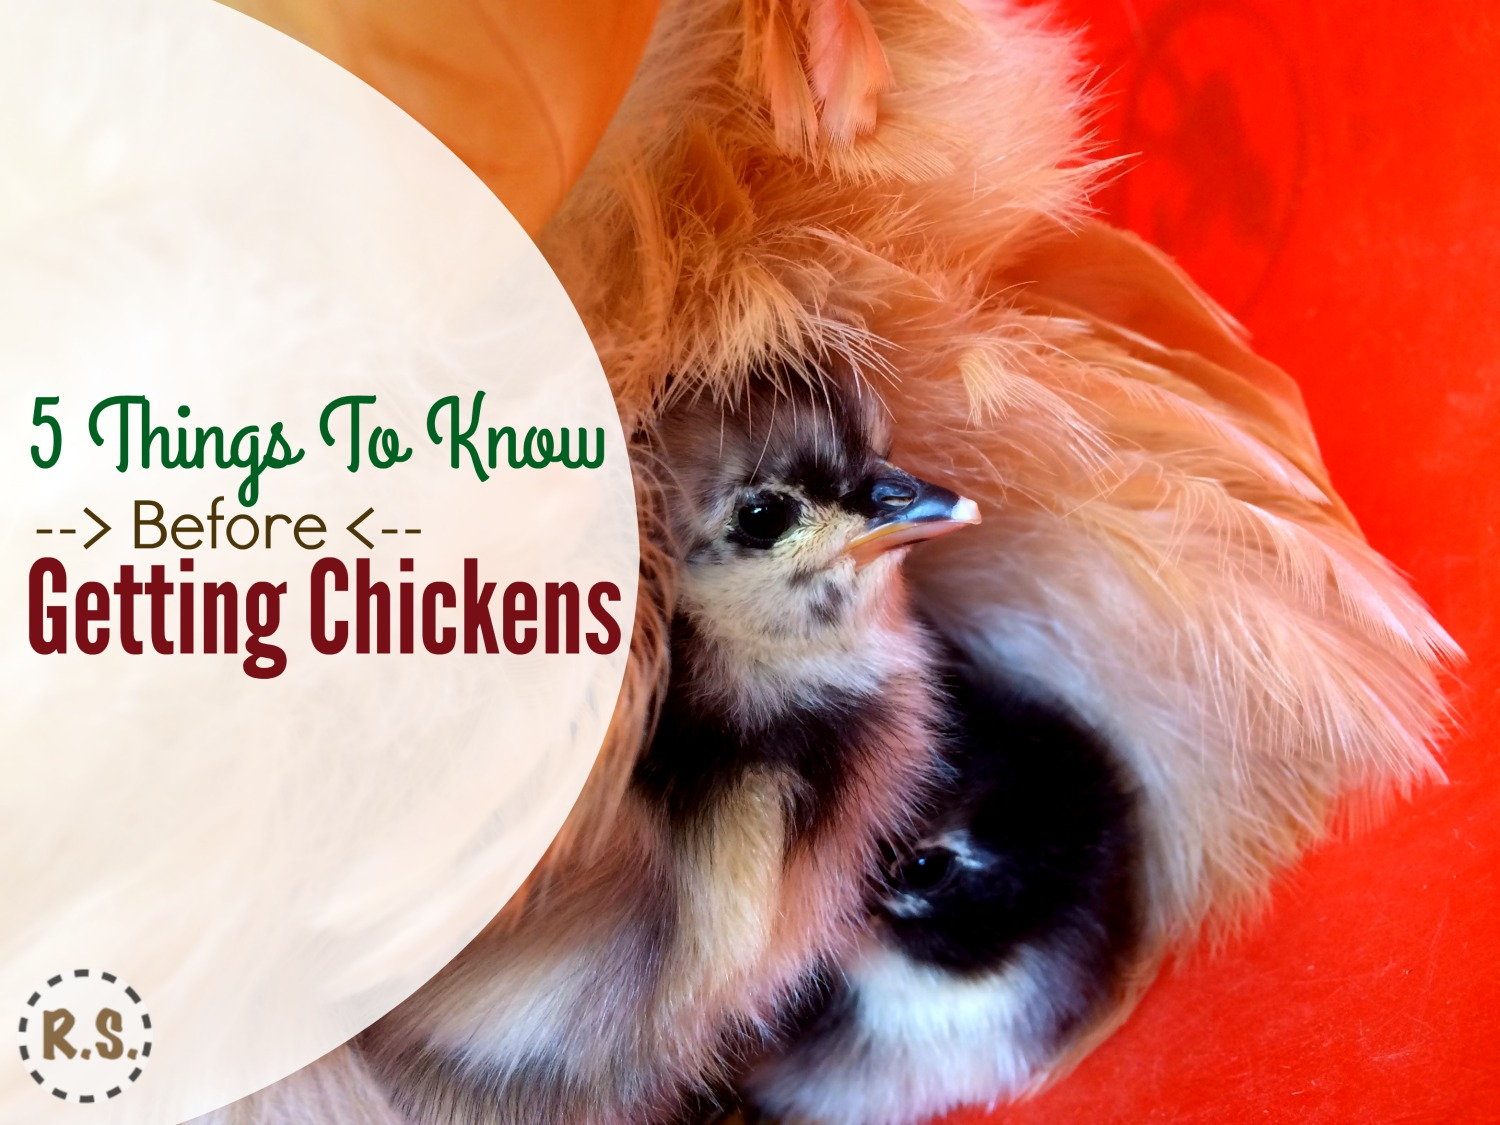 Ready to raise chickens! You'll need to decide where to get them. You can get chicks from your local feed store, order them, or get them from a local breeder. Find the best place to buy your chicks.